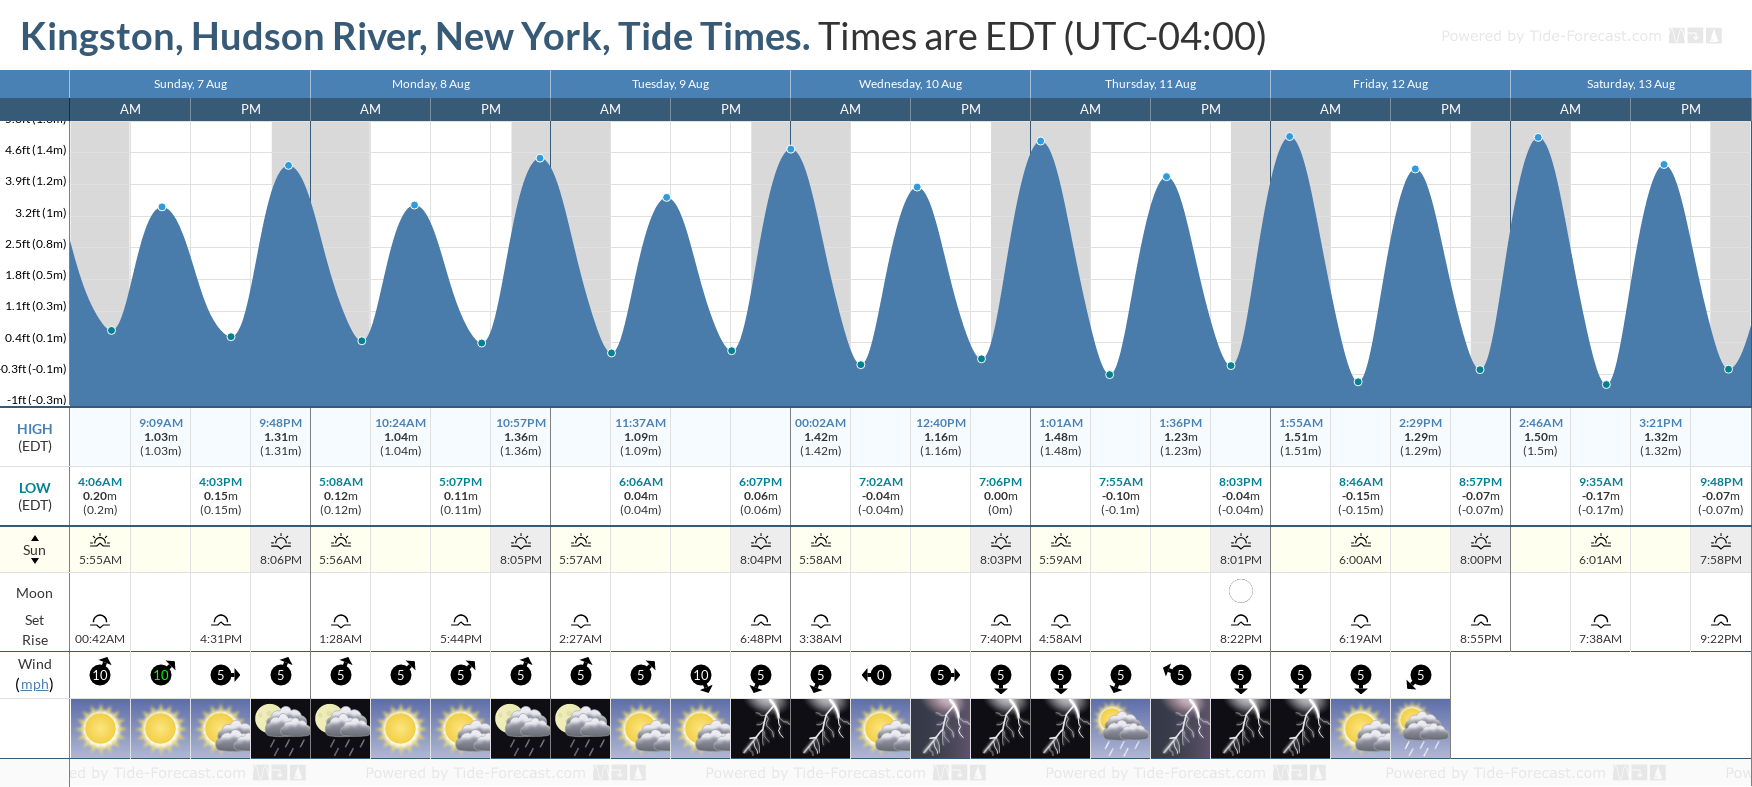 Kingston, Hudson River, New York Tide Chart including high and low tide tide times for the next 7 days